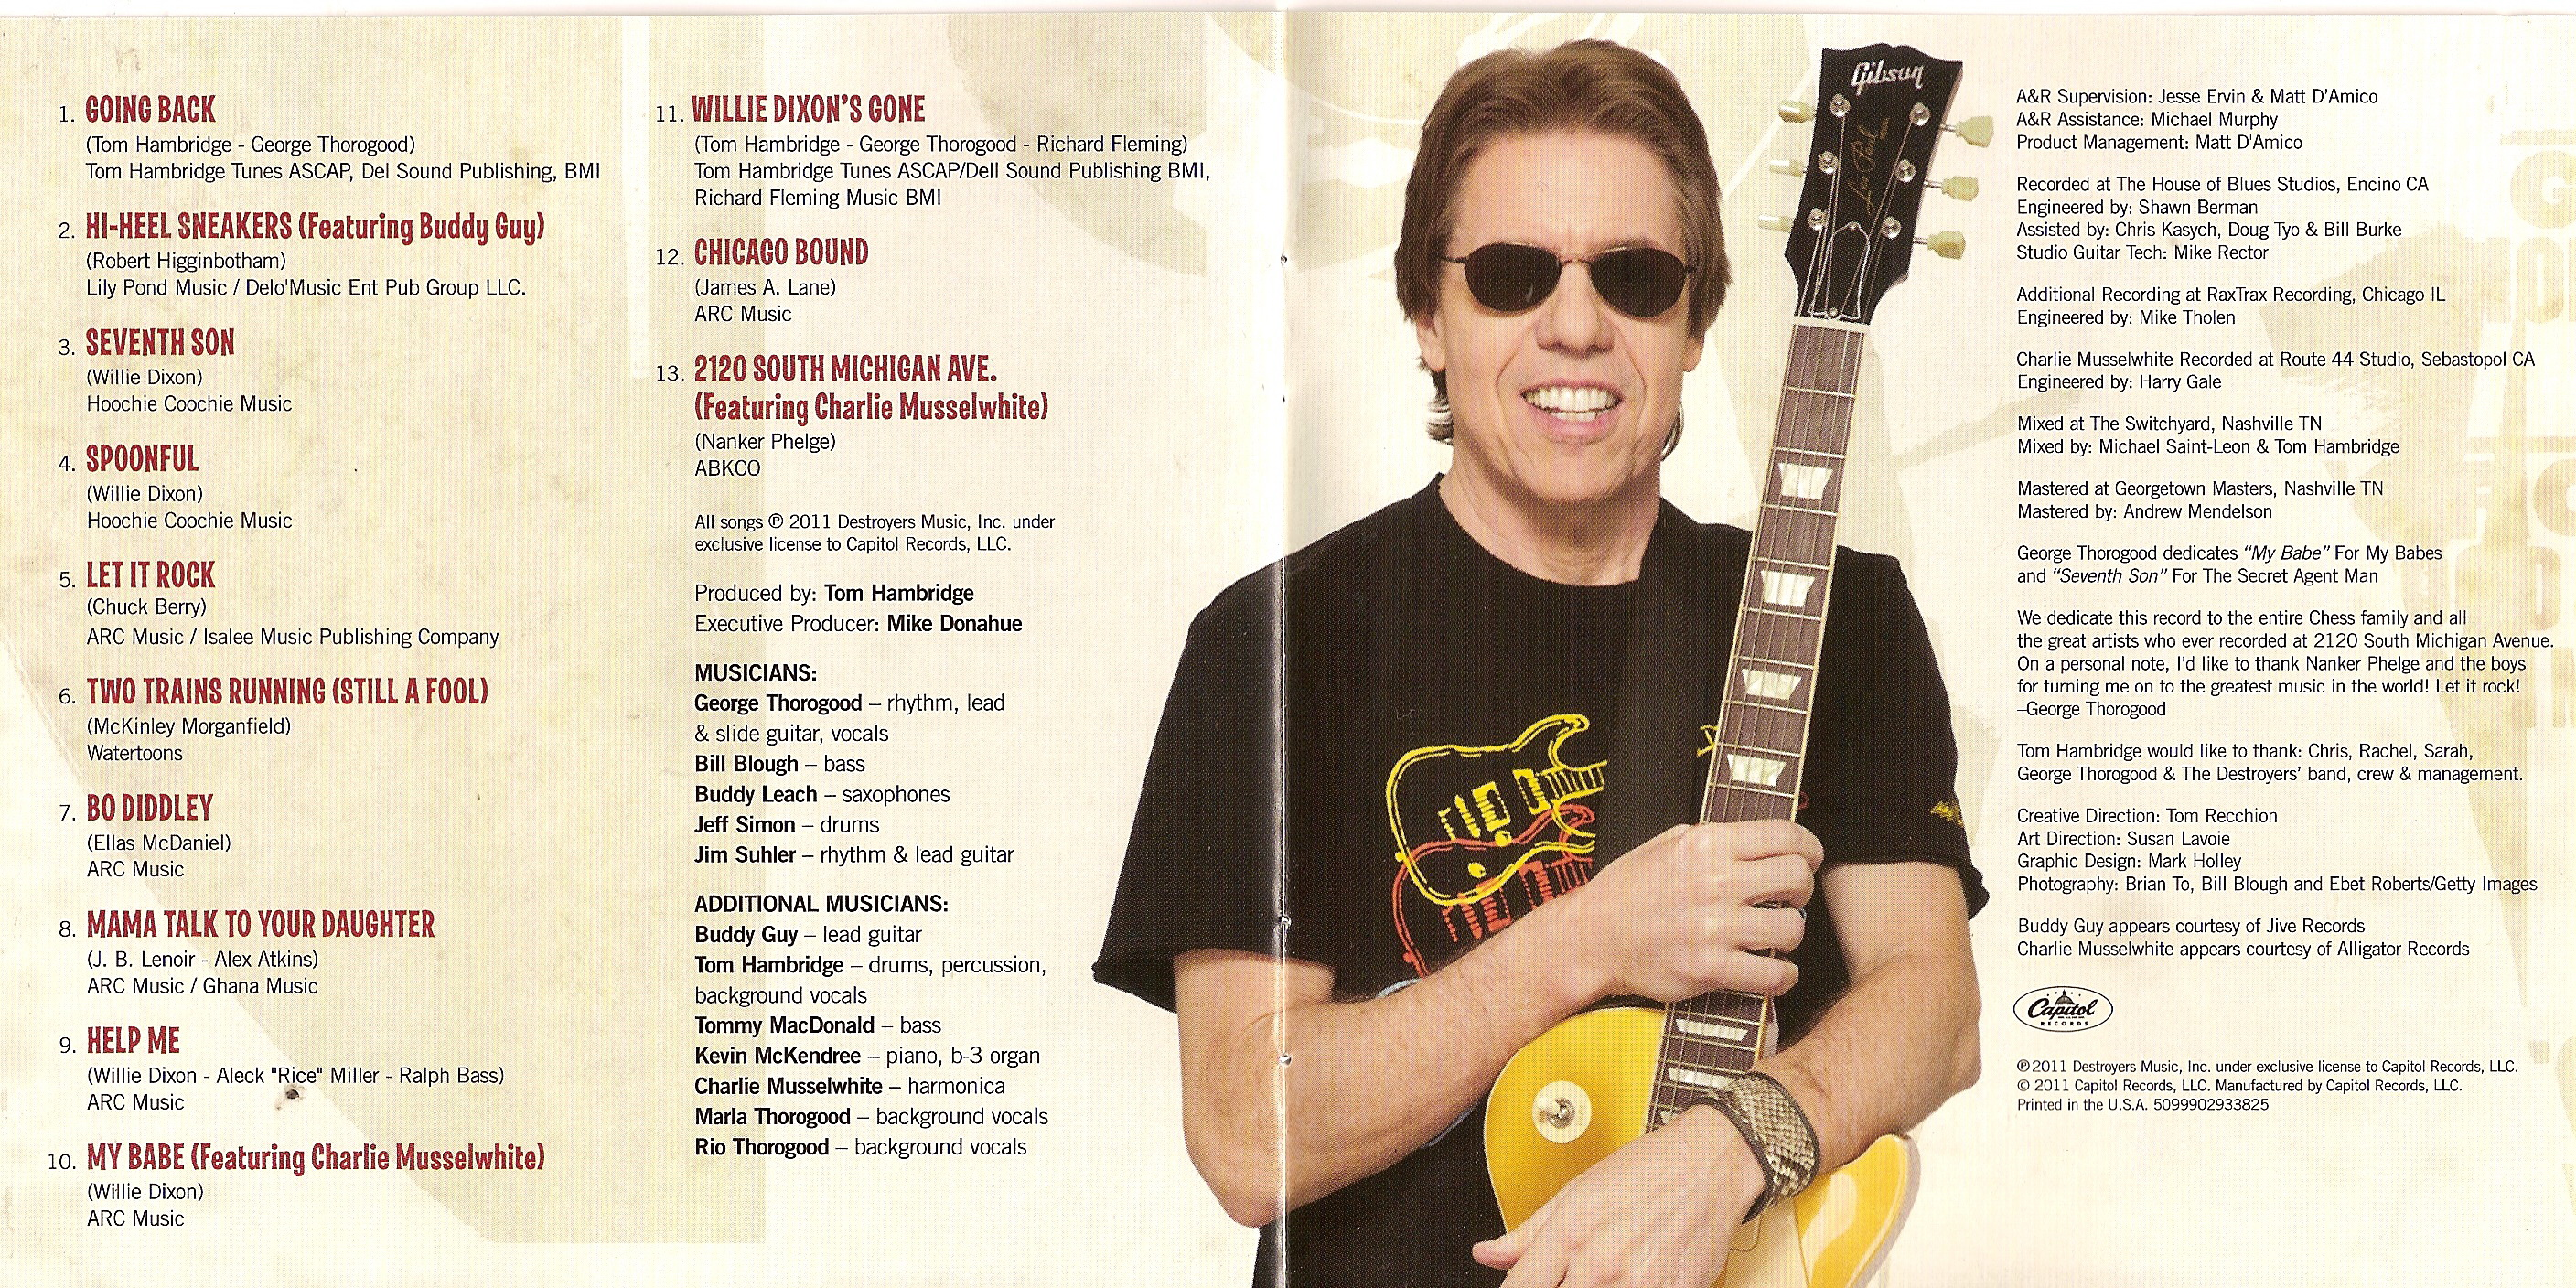 """GEORGE THOROGOOD & THE DESTROYERS """"2120 South Michigan Ave"""